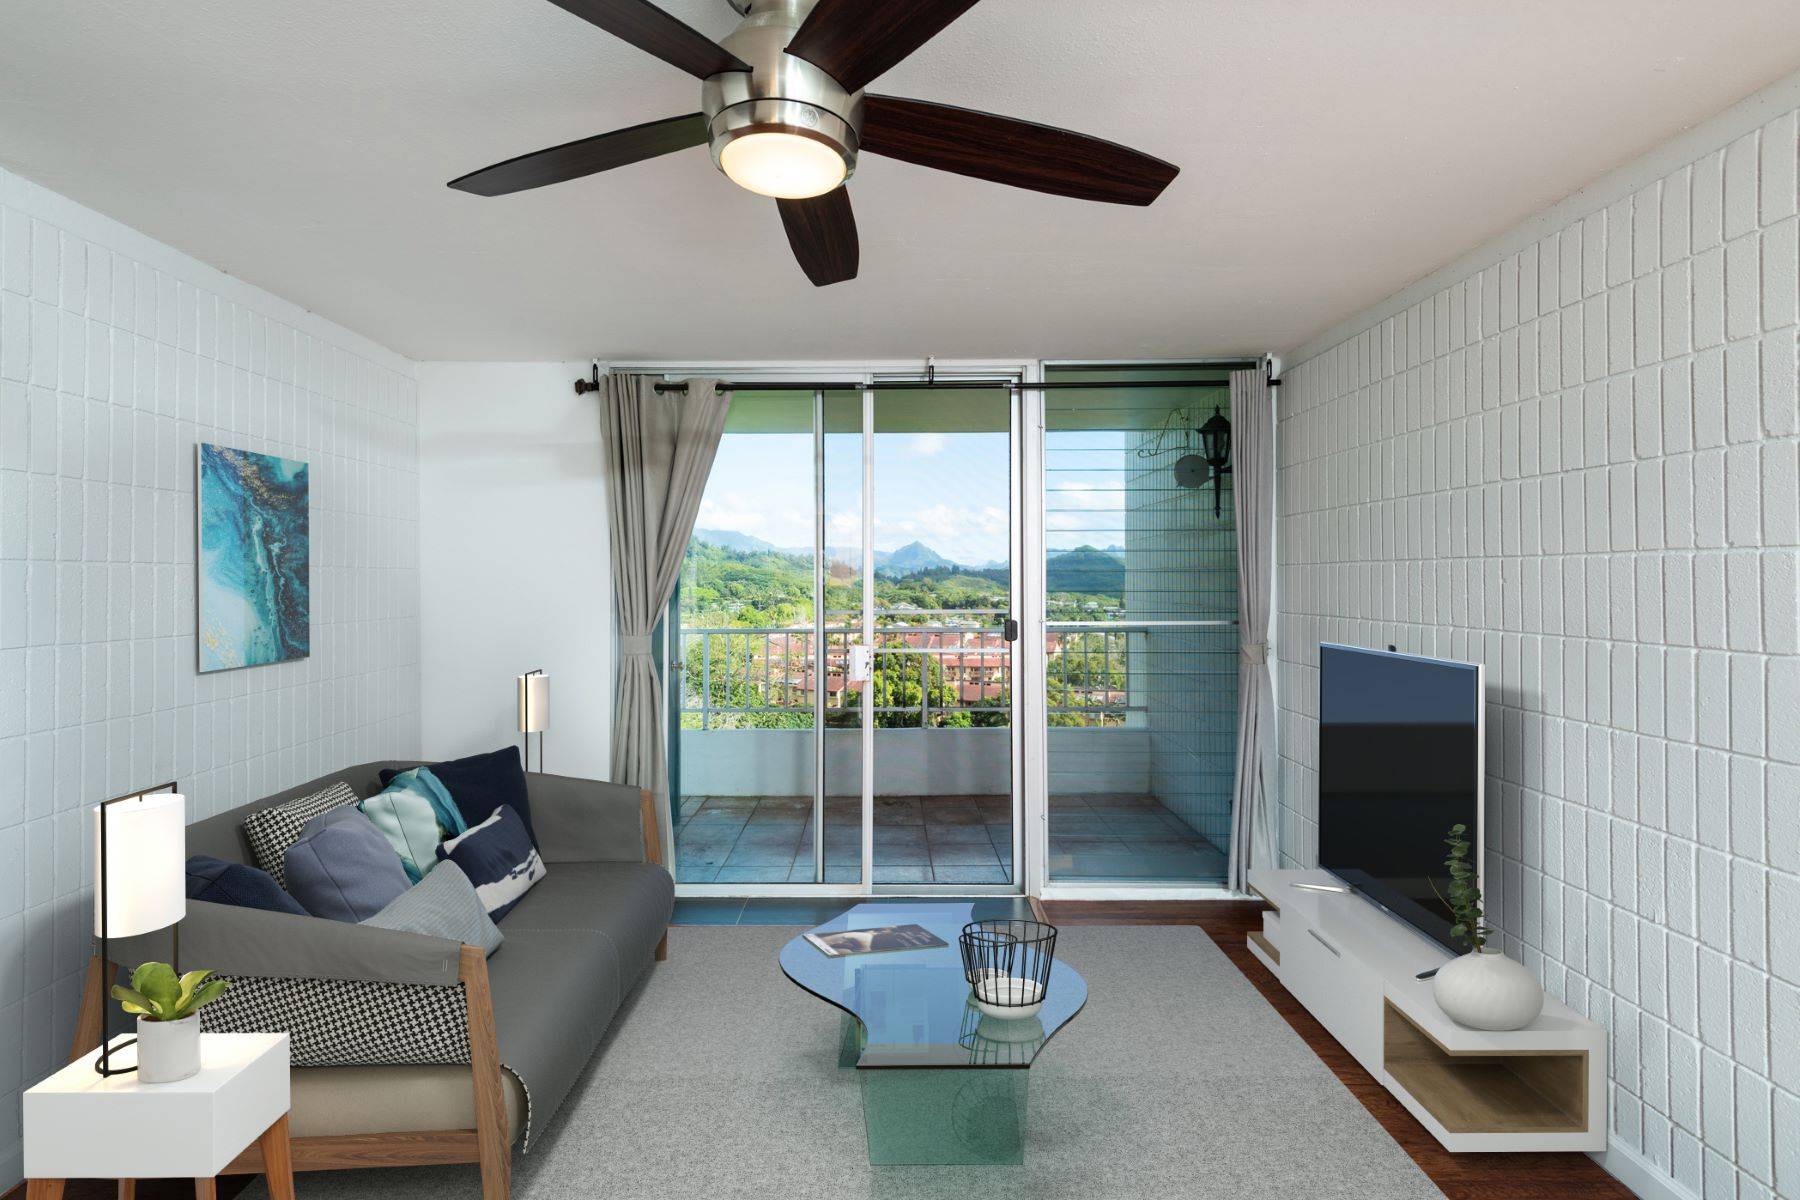 Condominiums 为 销售 在 Haiku Hale Condo, Kaneohe, Coastline Views, Mountain Views, Ocean Views 46-283 Kahuhipa Street #PH8 卡内里奥, 夏威夷 96744 美国